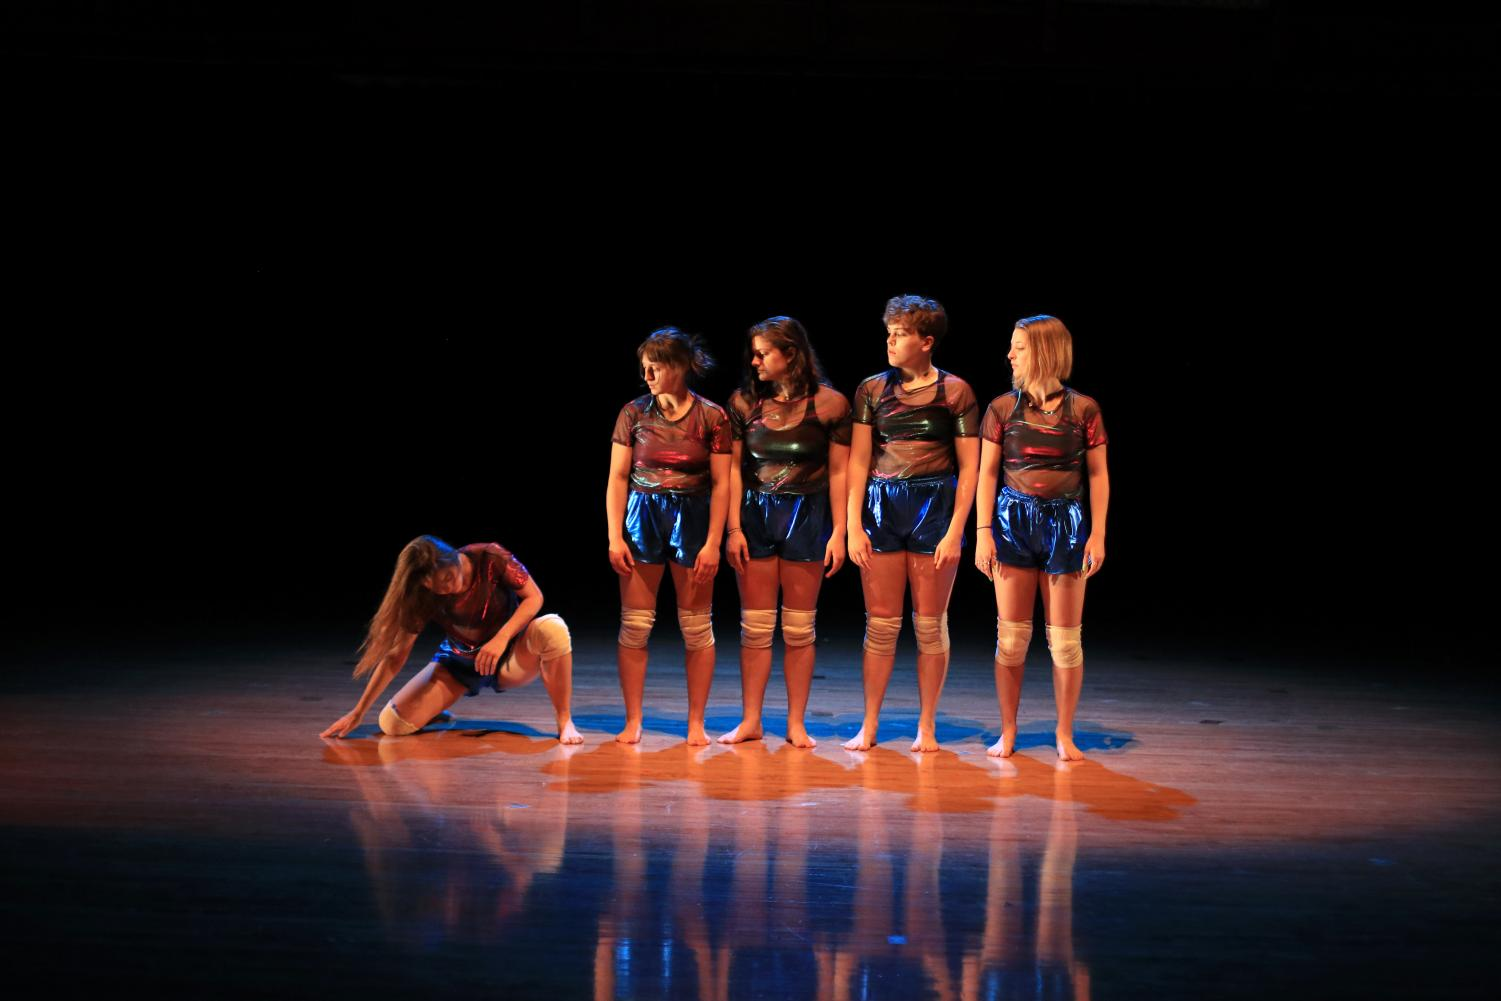 College third-year Evelyn Morrison, fourth-year Georgie Johnson, first-years Lena Golia and Emmacate Sauer, and second-year Analise LaRiviere in a piece choreographed by visiting artist Krystal Butler.